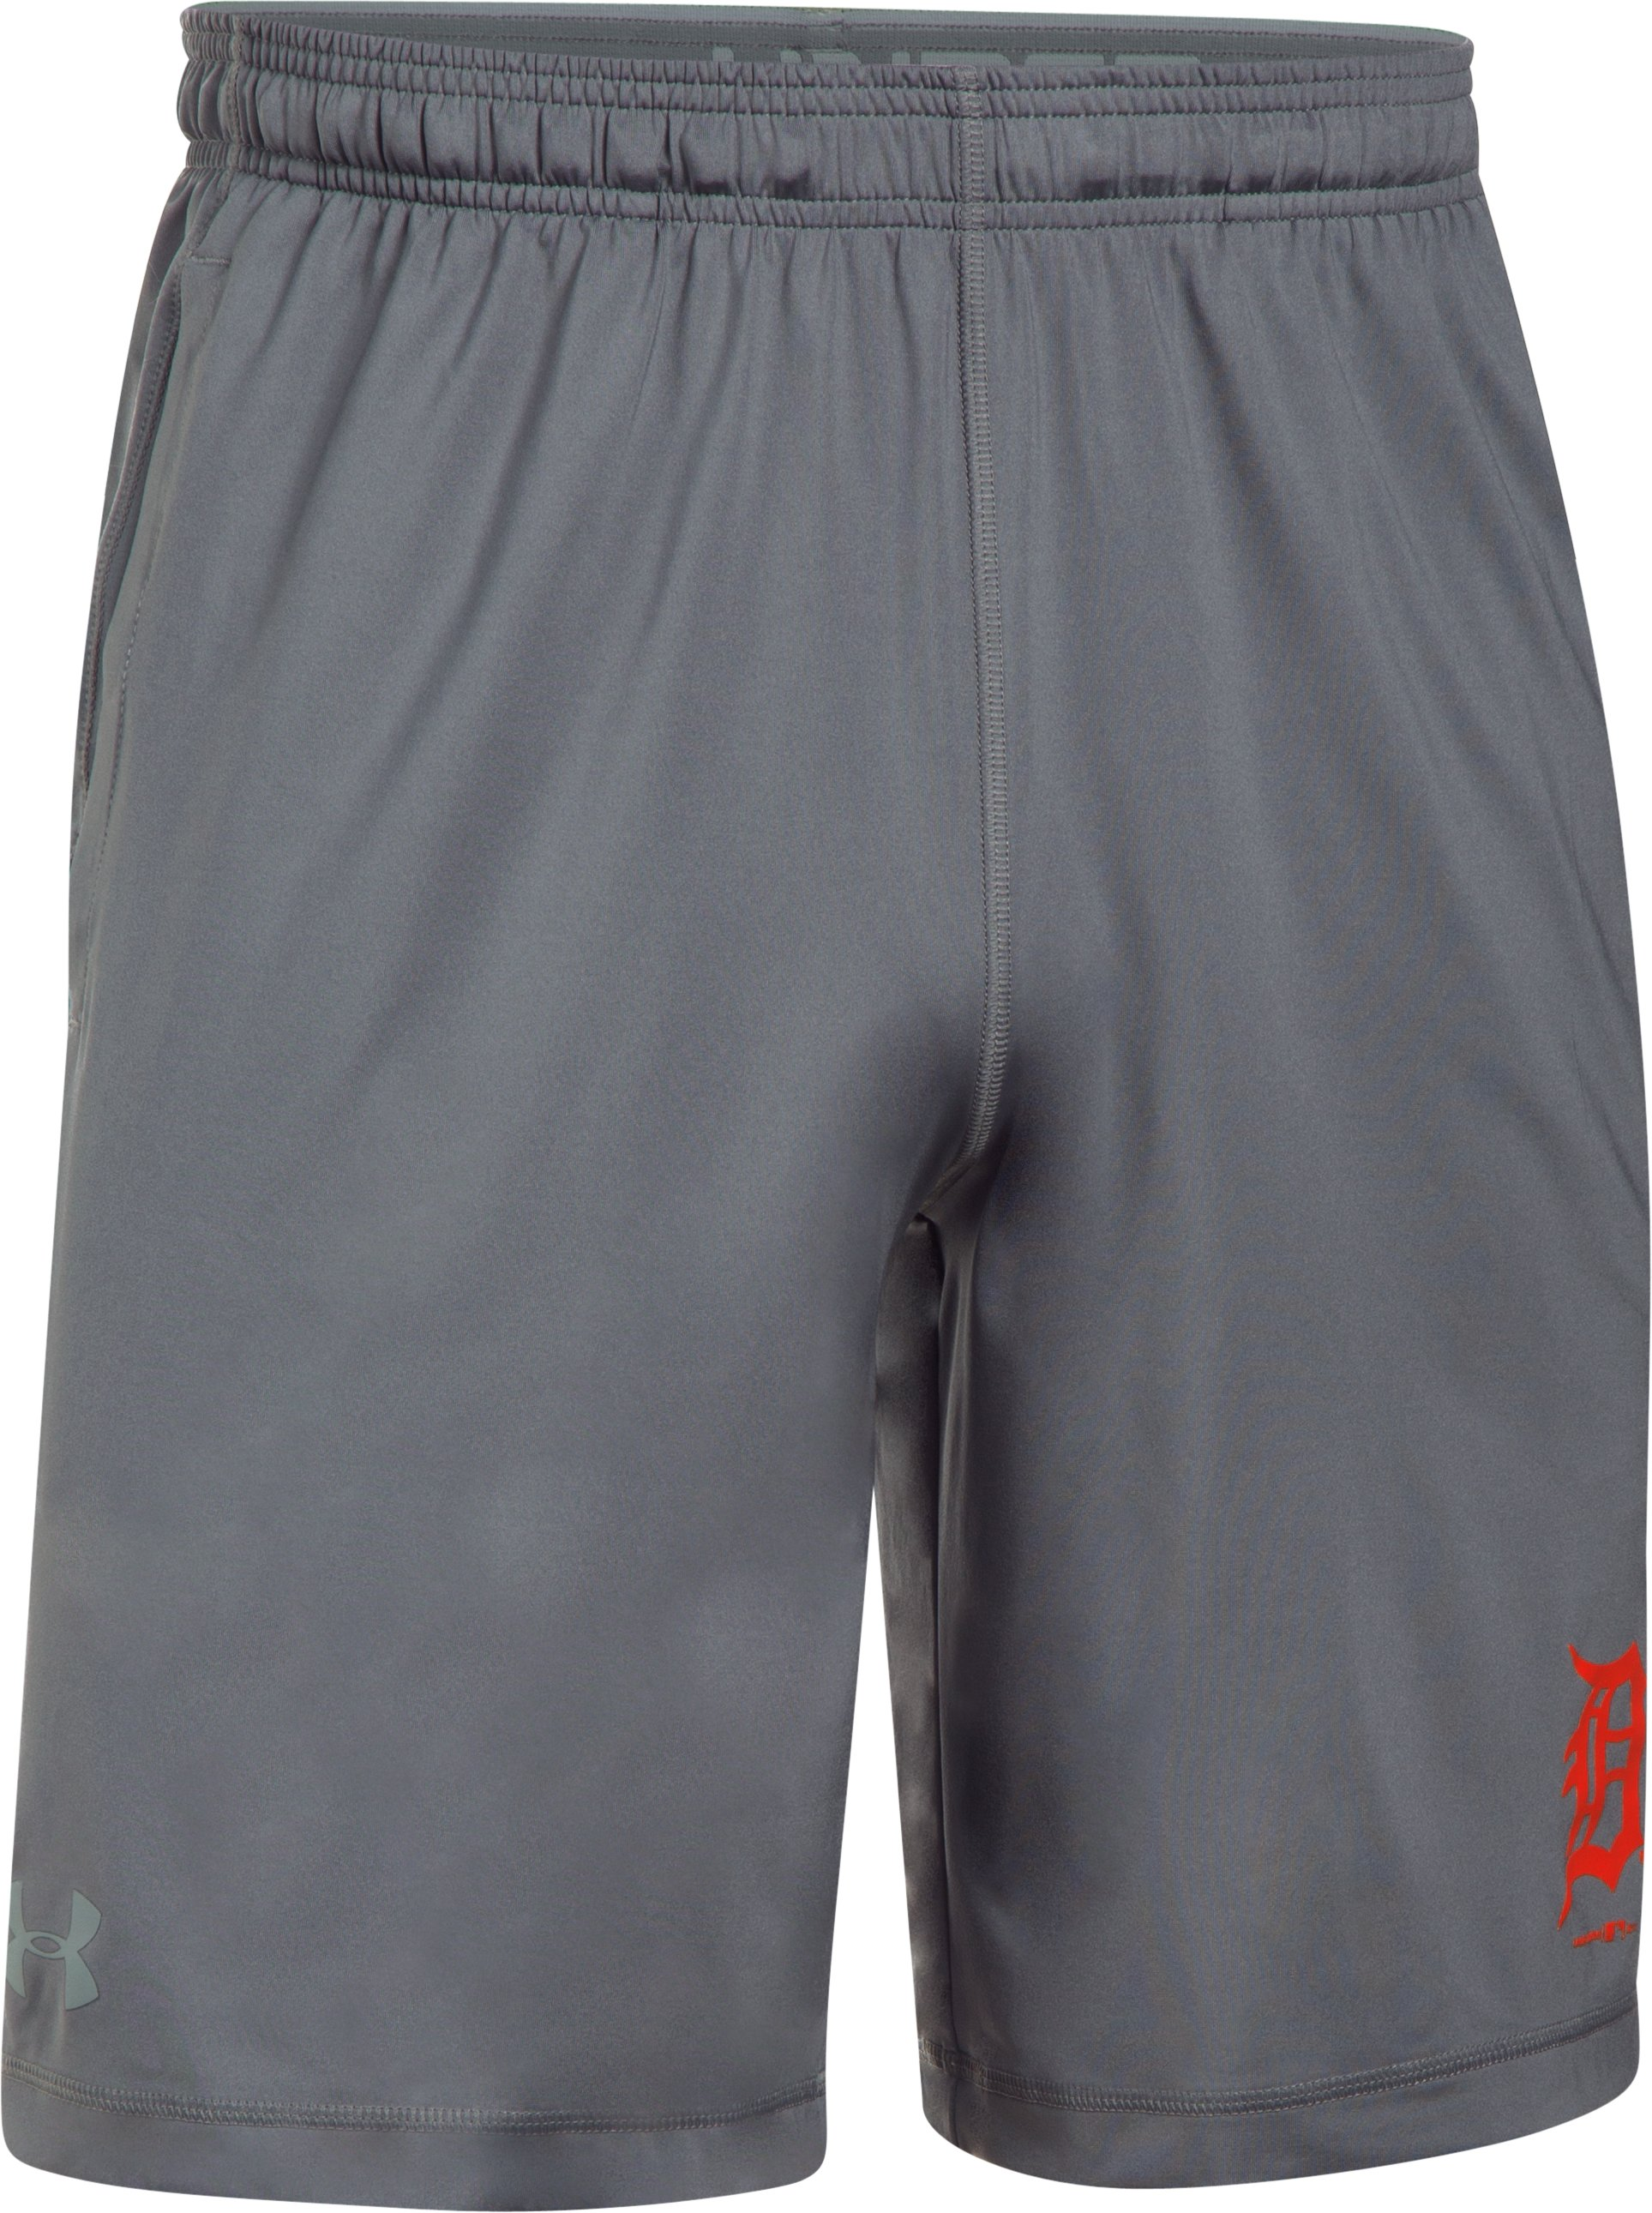 Men's Detroit Tigers UA Raid Shorts, Graphite,